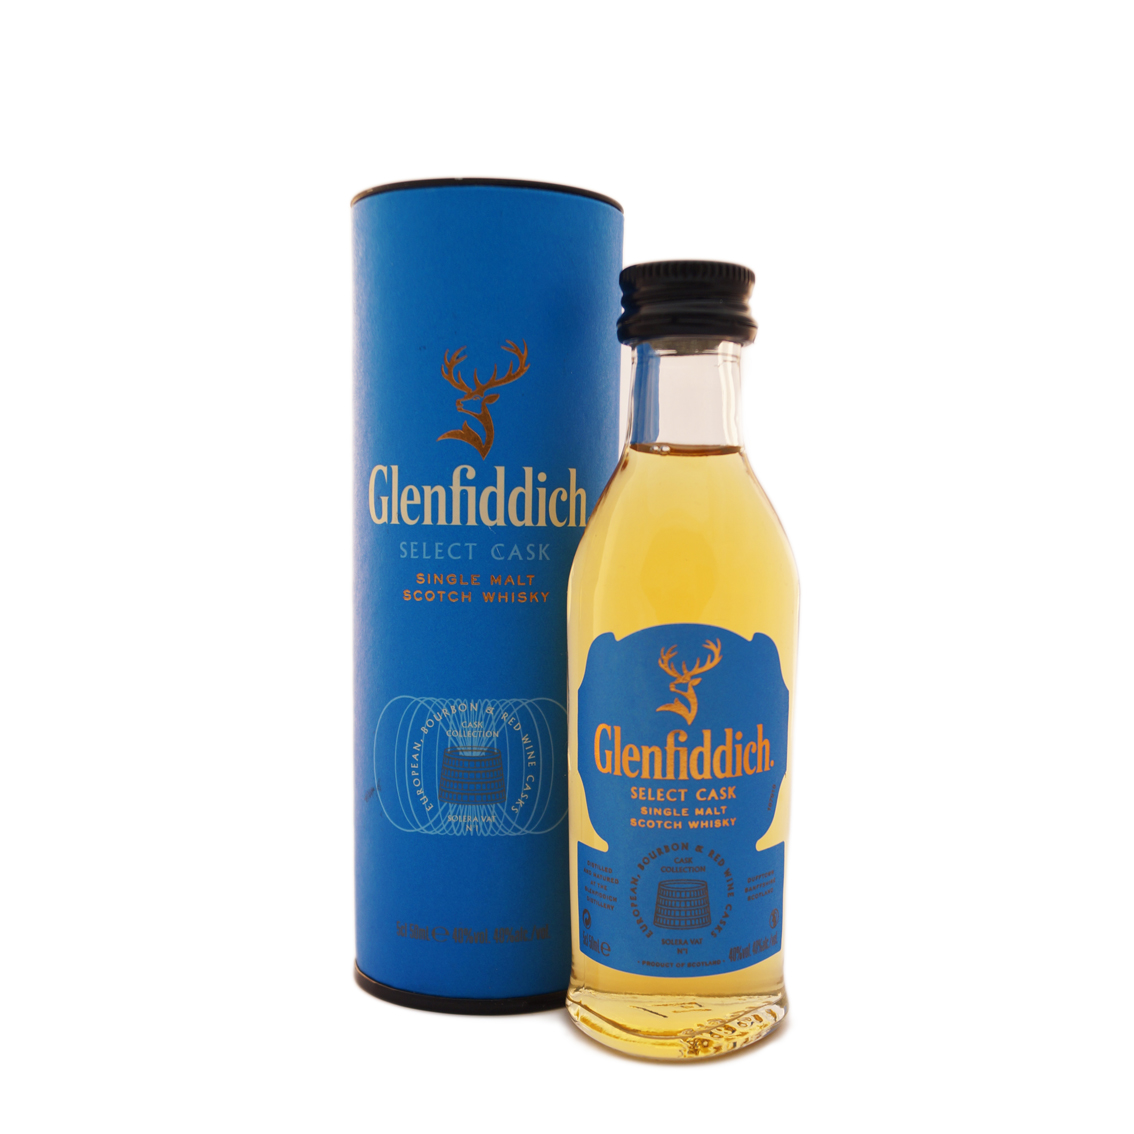 WHISKY-GLENFIDDICH-SELECT-CASK-SMSW-T